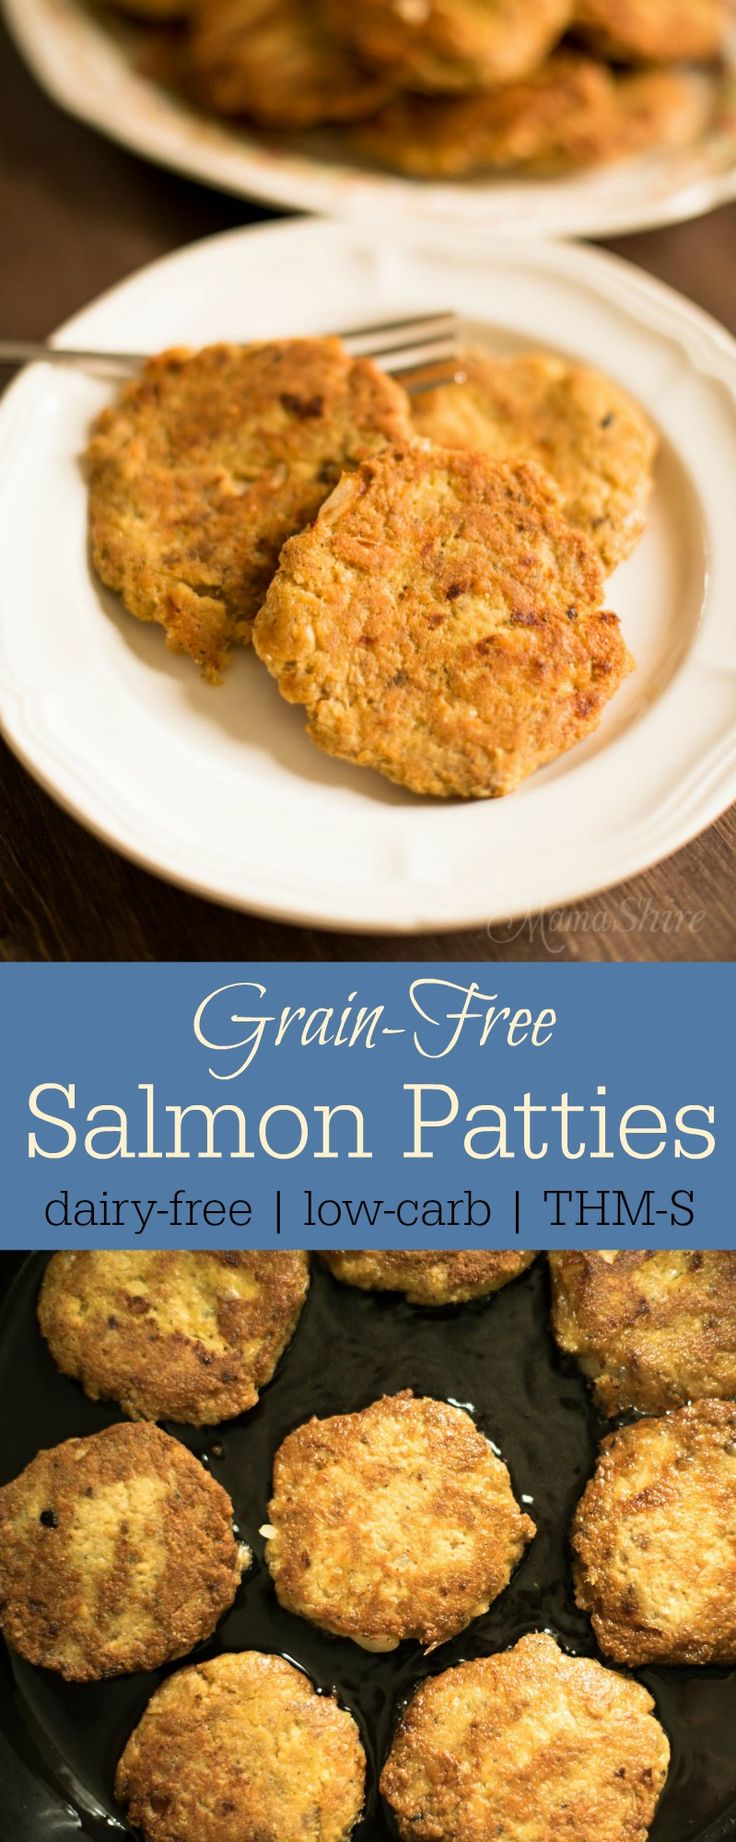 Grain-Free Salmon Patties. Healthy salmon patties that are delicious and so easy to make. Nut-free, Dairy-free, Low-carb. THM-S